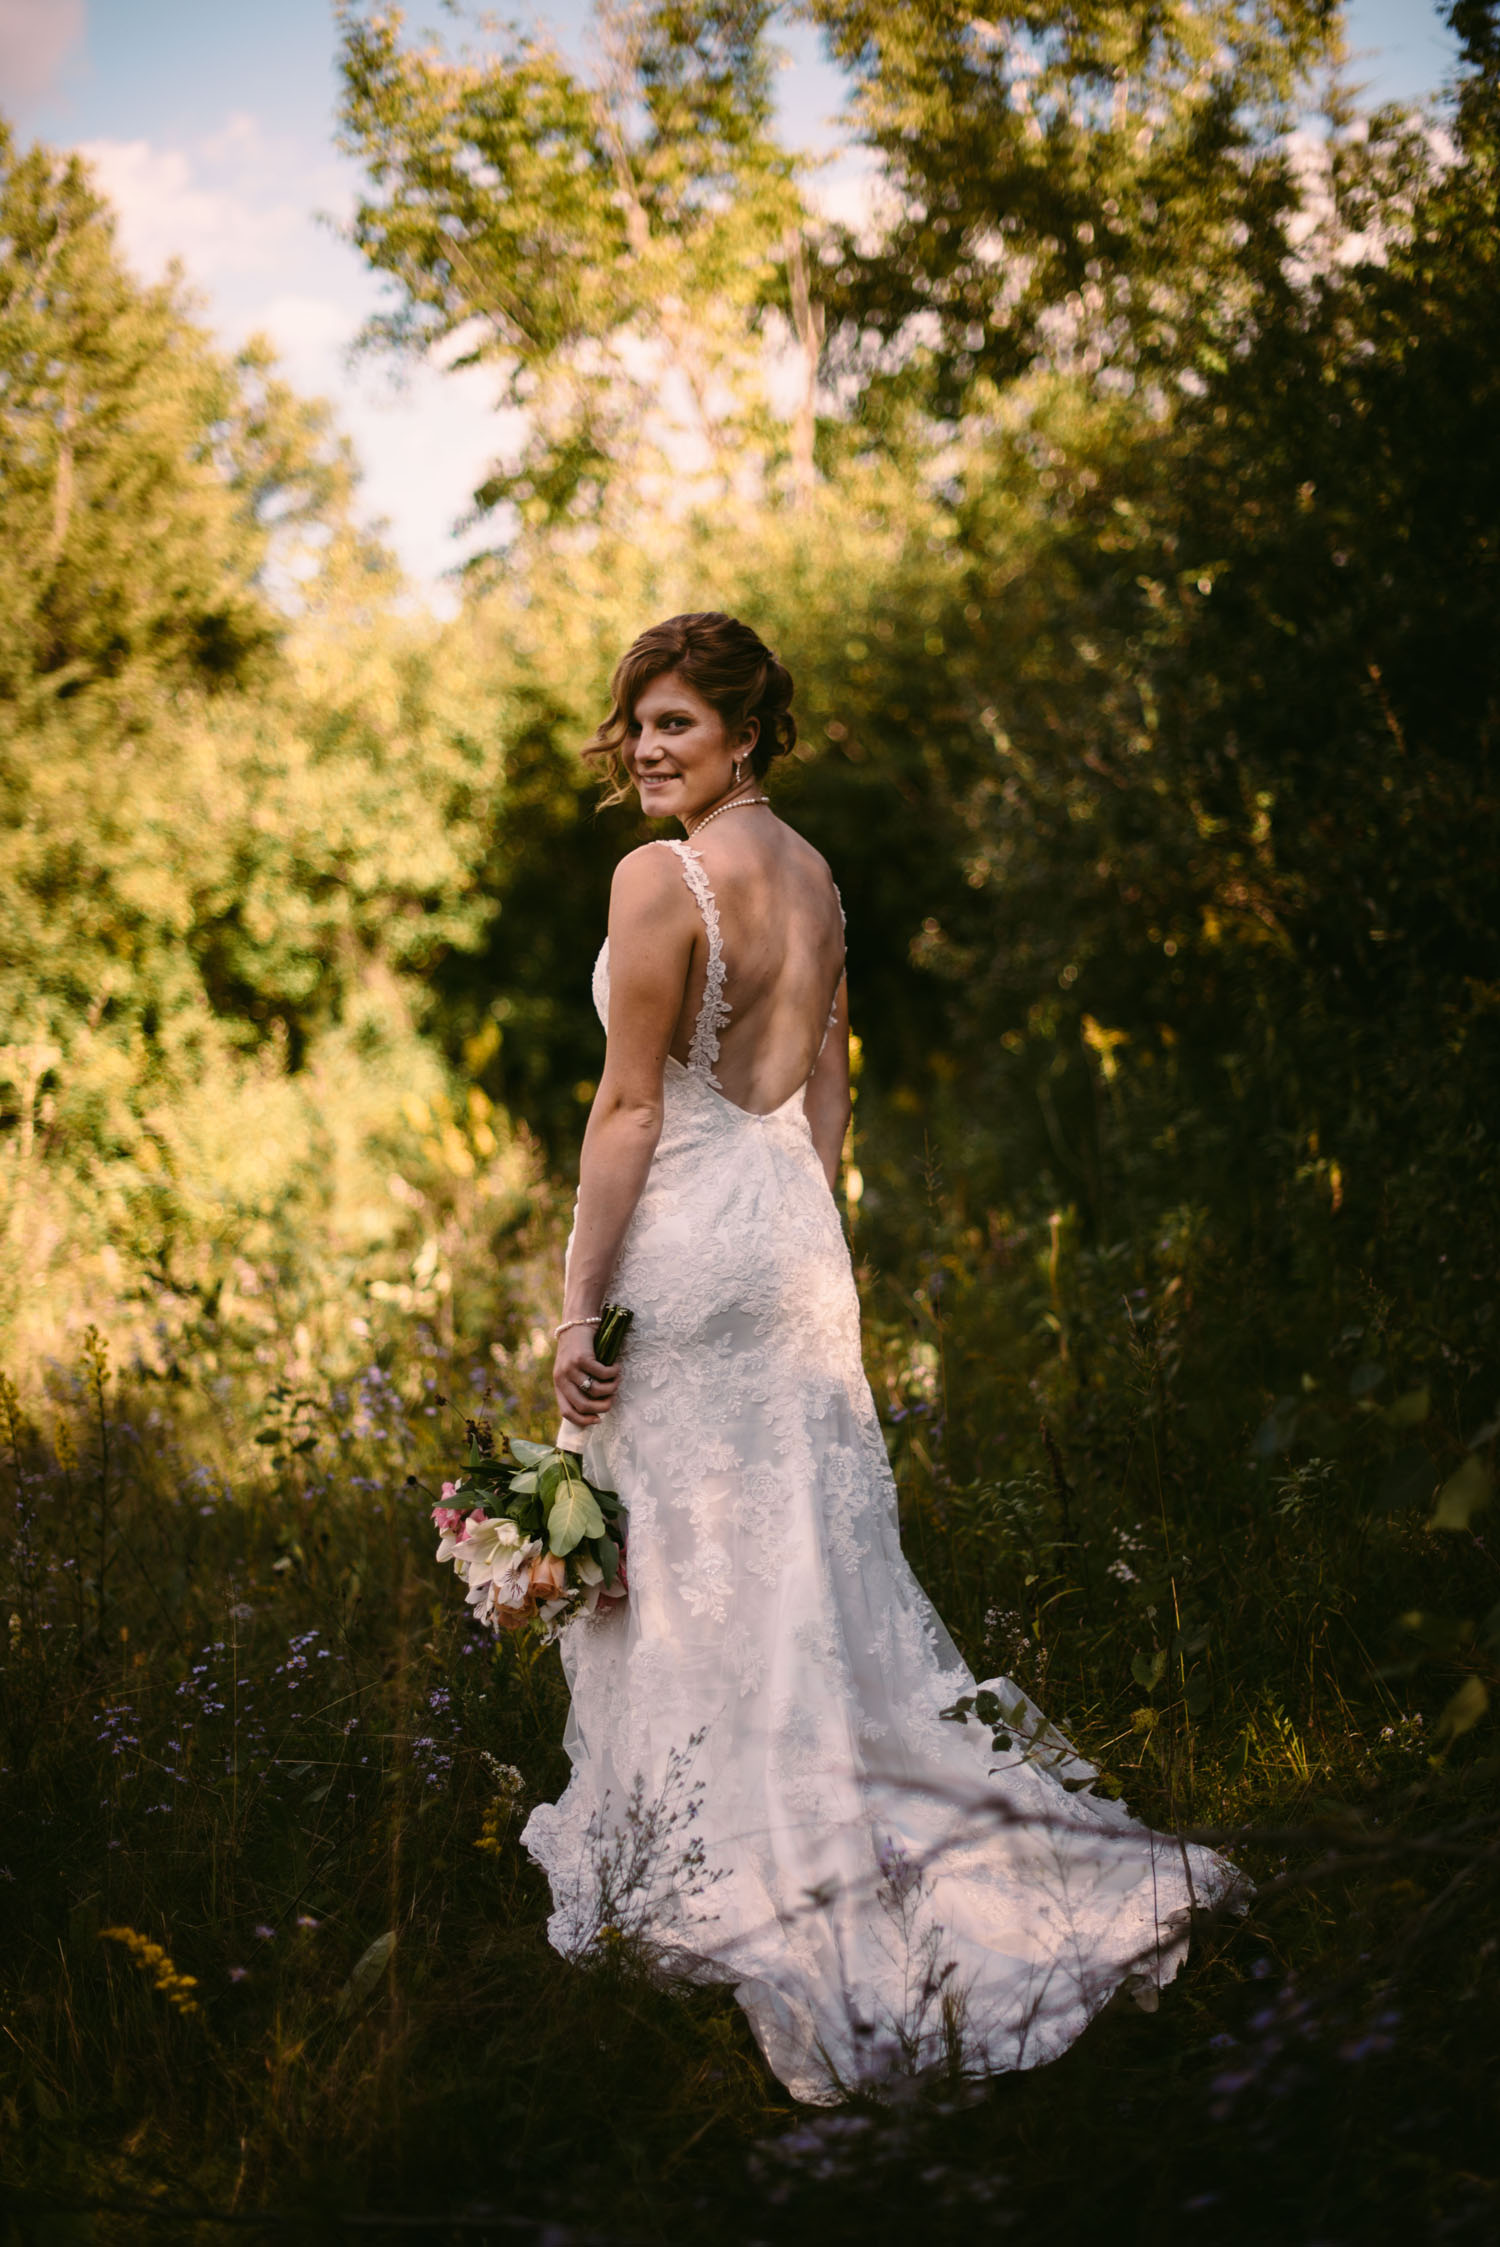 minnesota-bride-wedding-photography.jpg